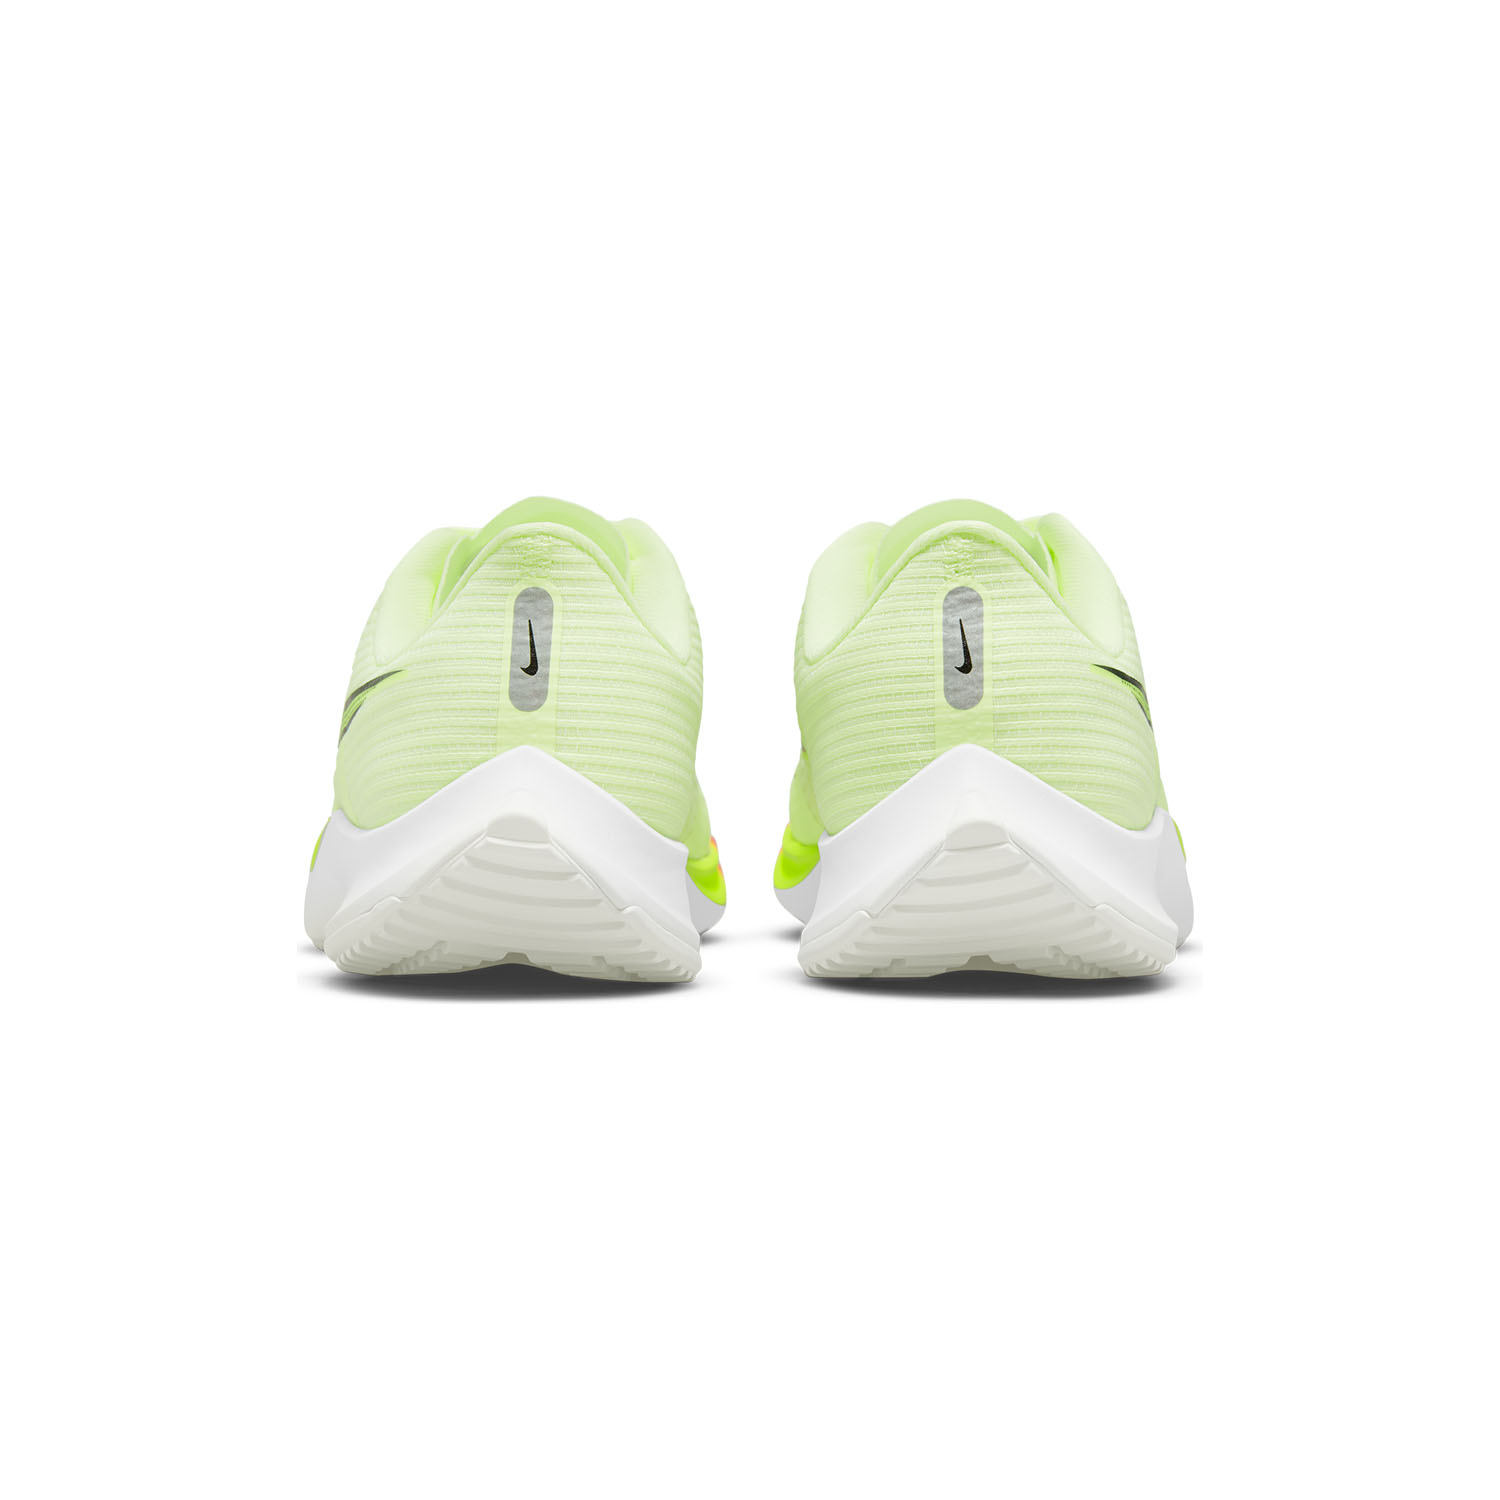 Nike Air Zoom Rival Fly 3 - Barely Volt/Black/Photon Dust